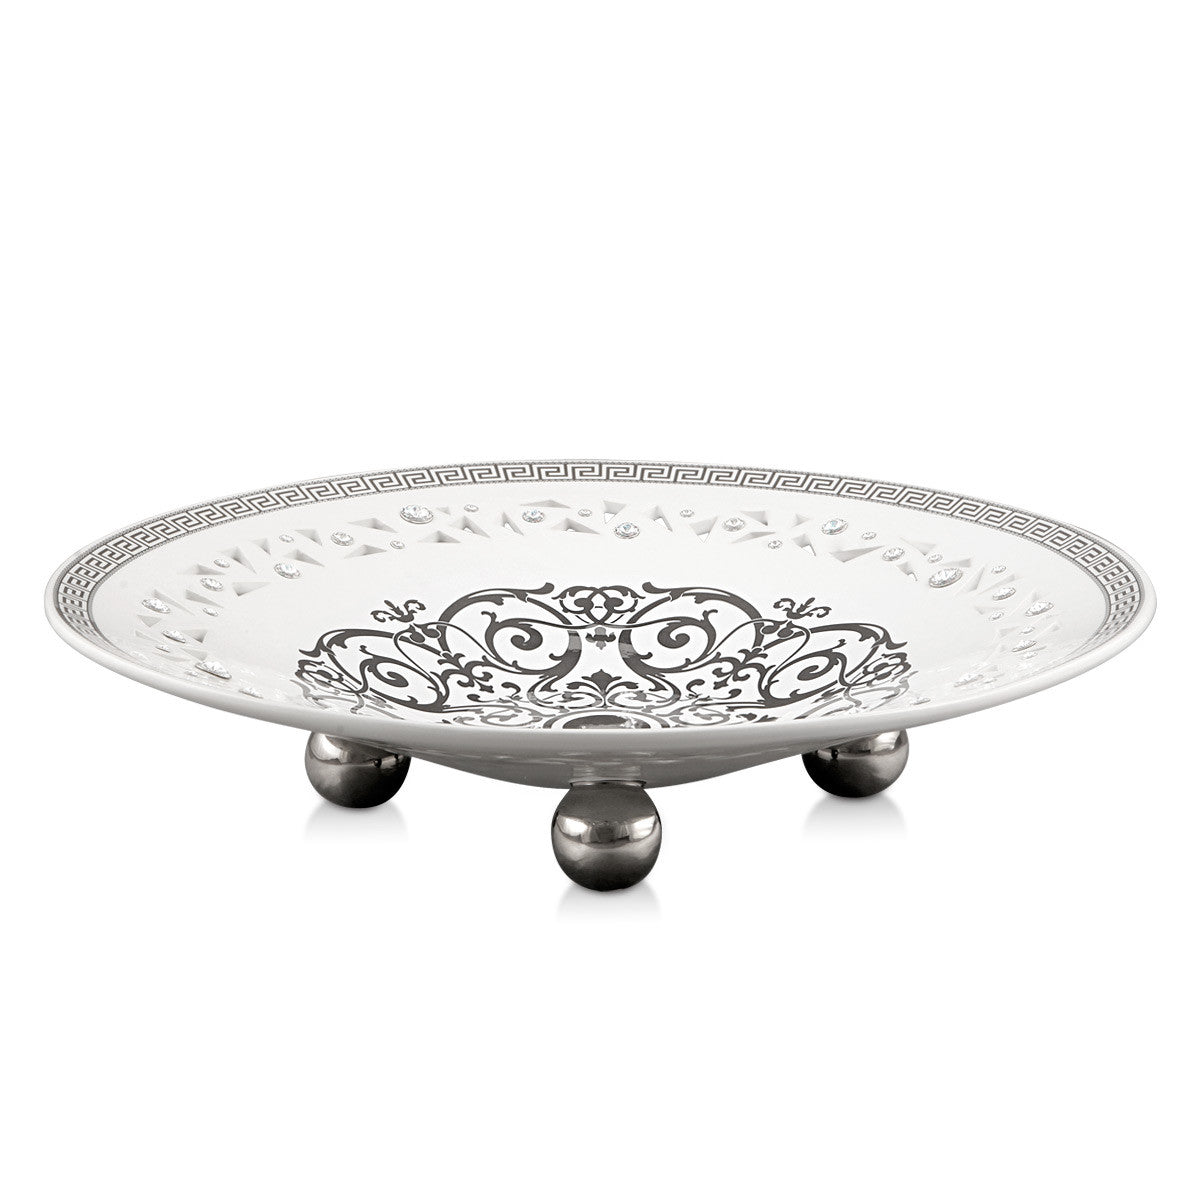 ceramic pierced centerpiece with platinum Imperial design